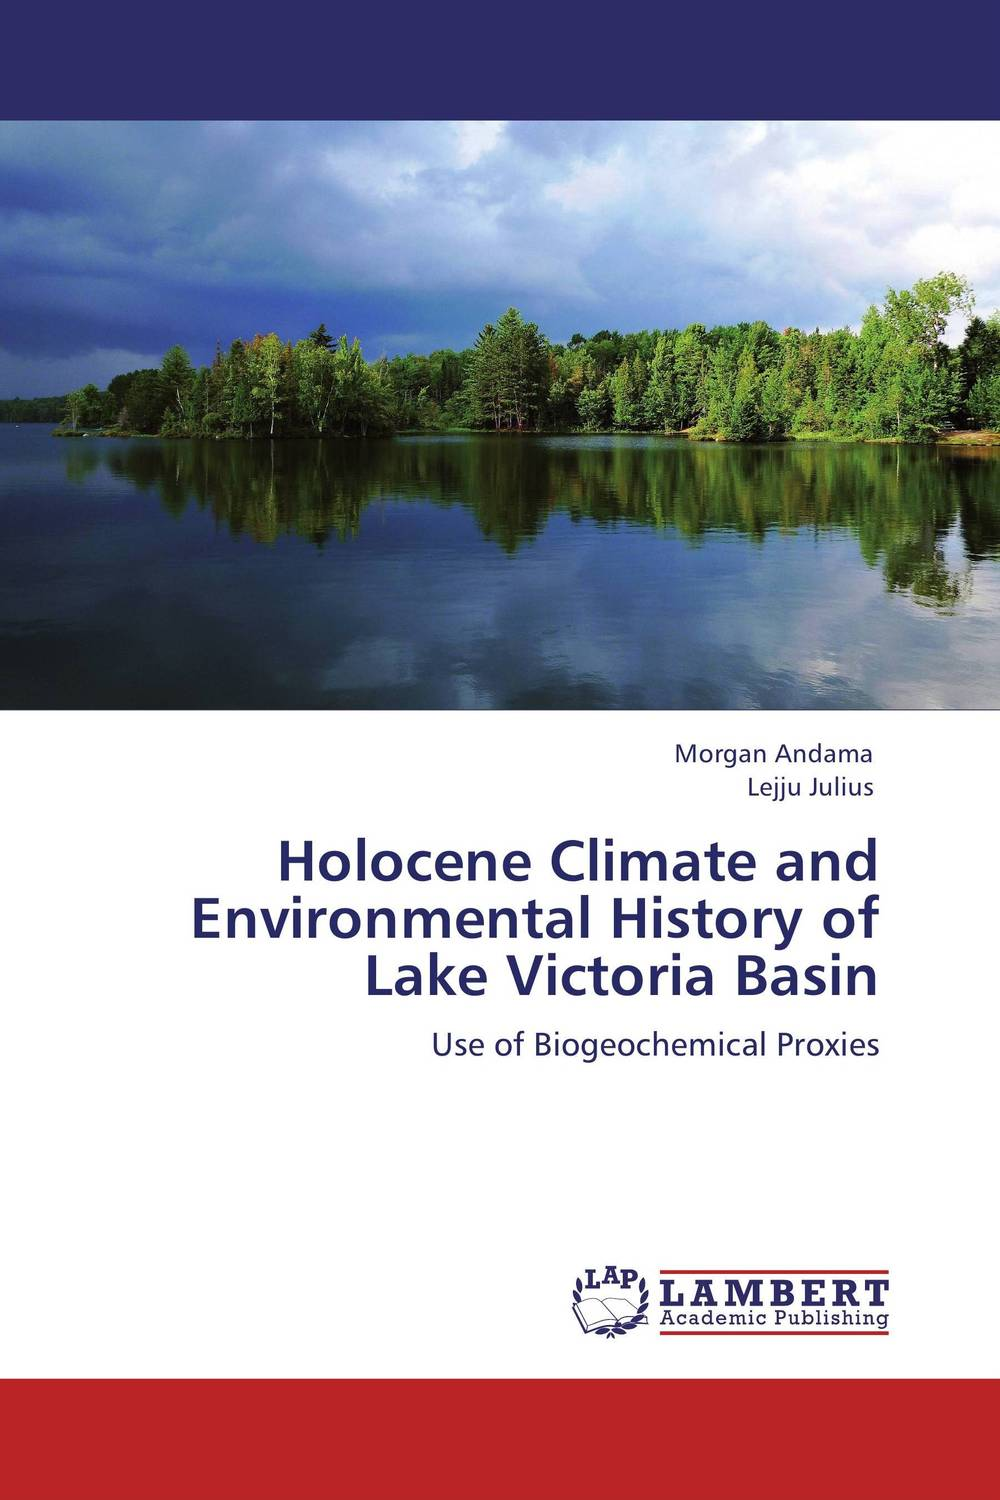 Holocene Climate and Environmental History of Lake Victoria Basin week at the lake